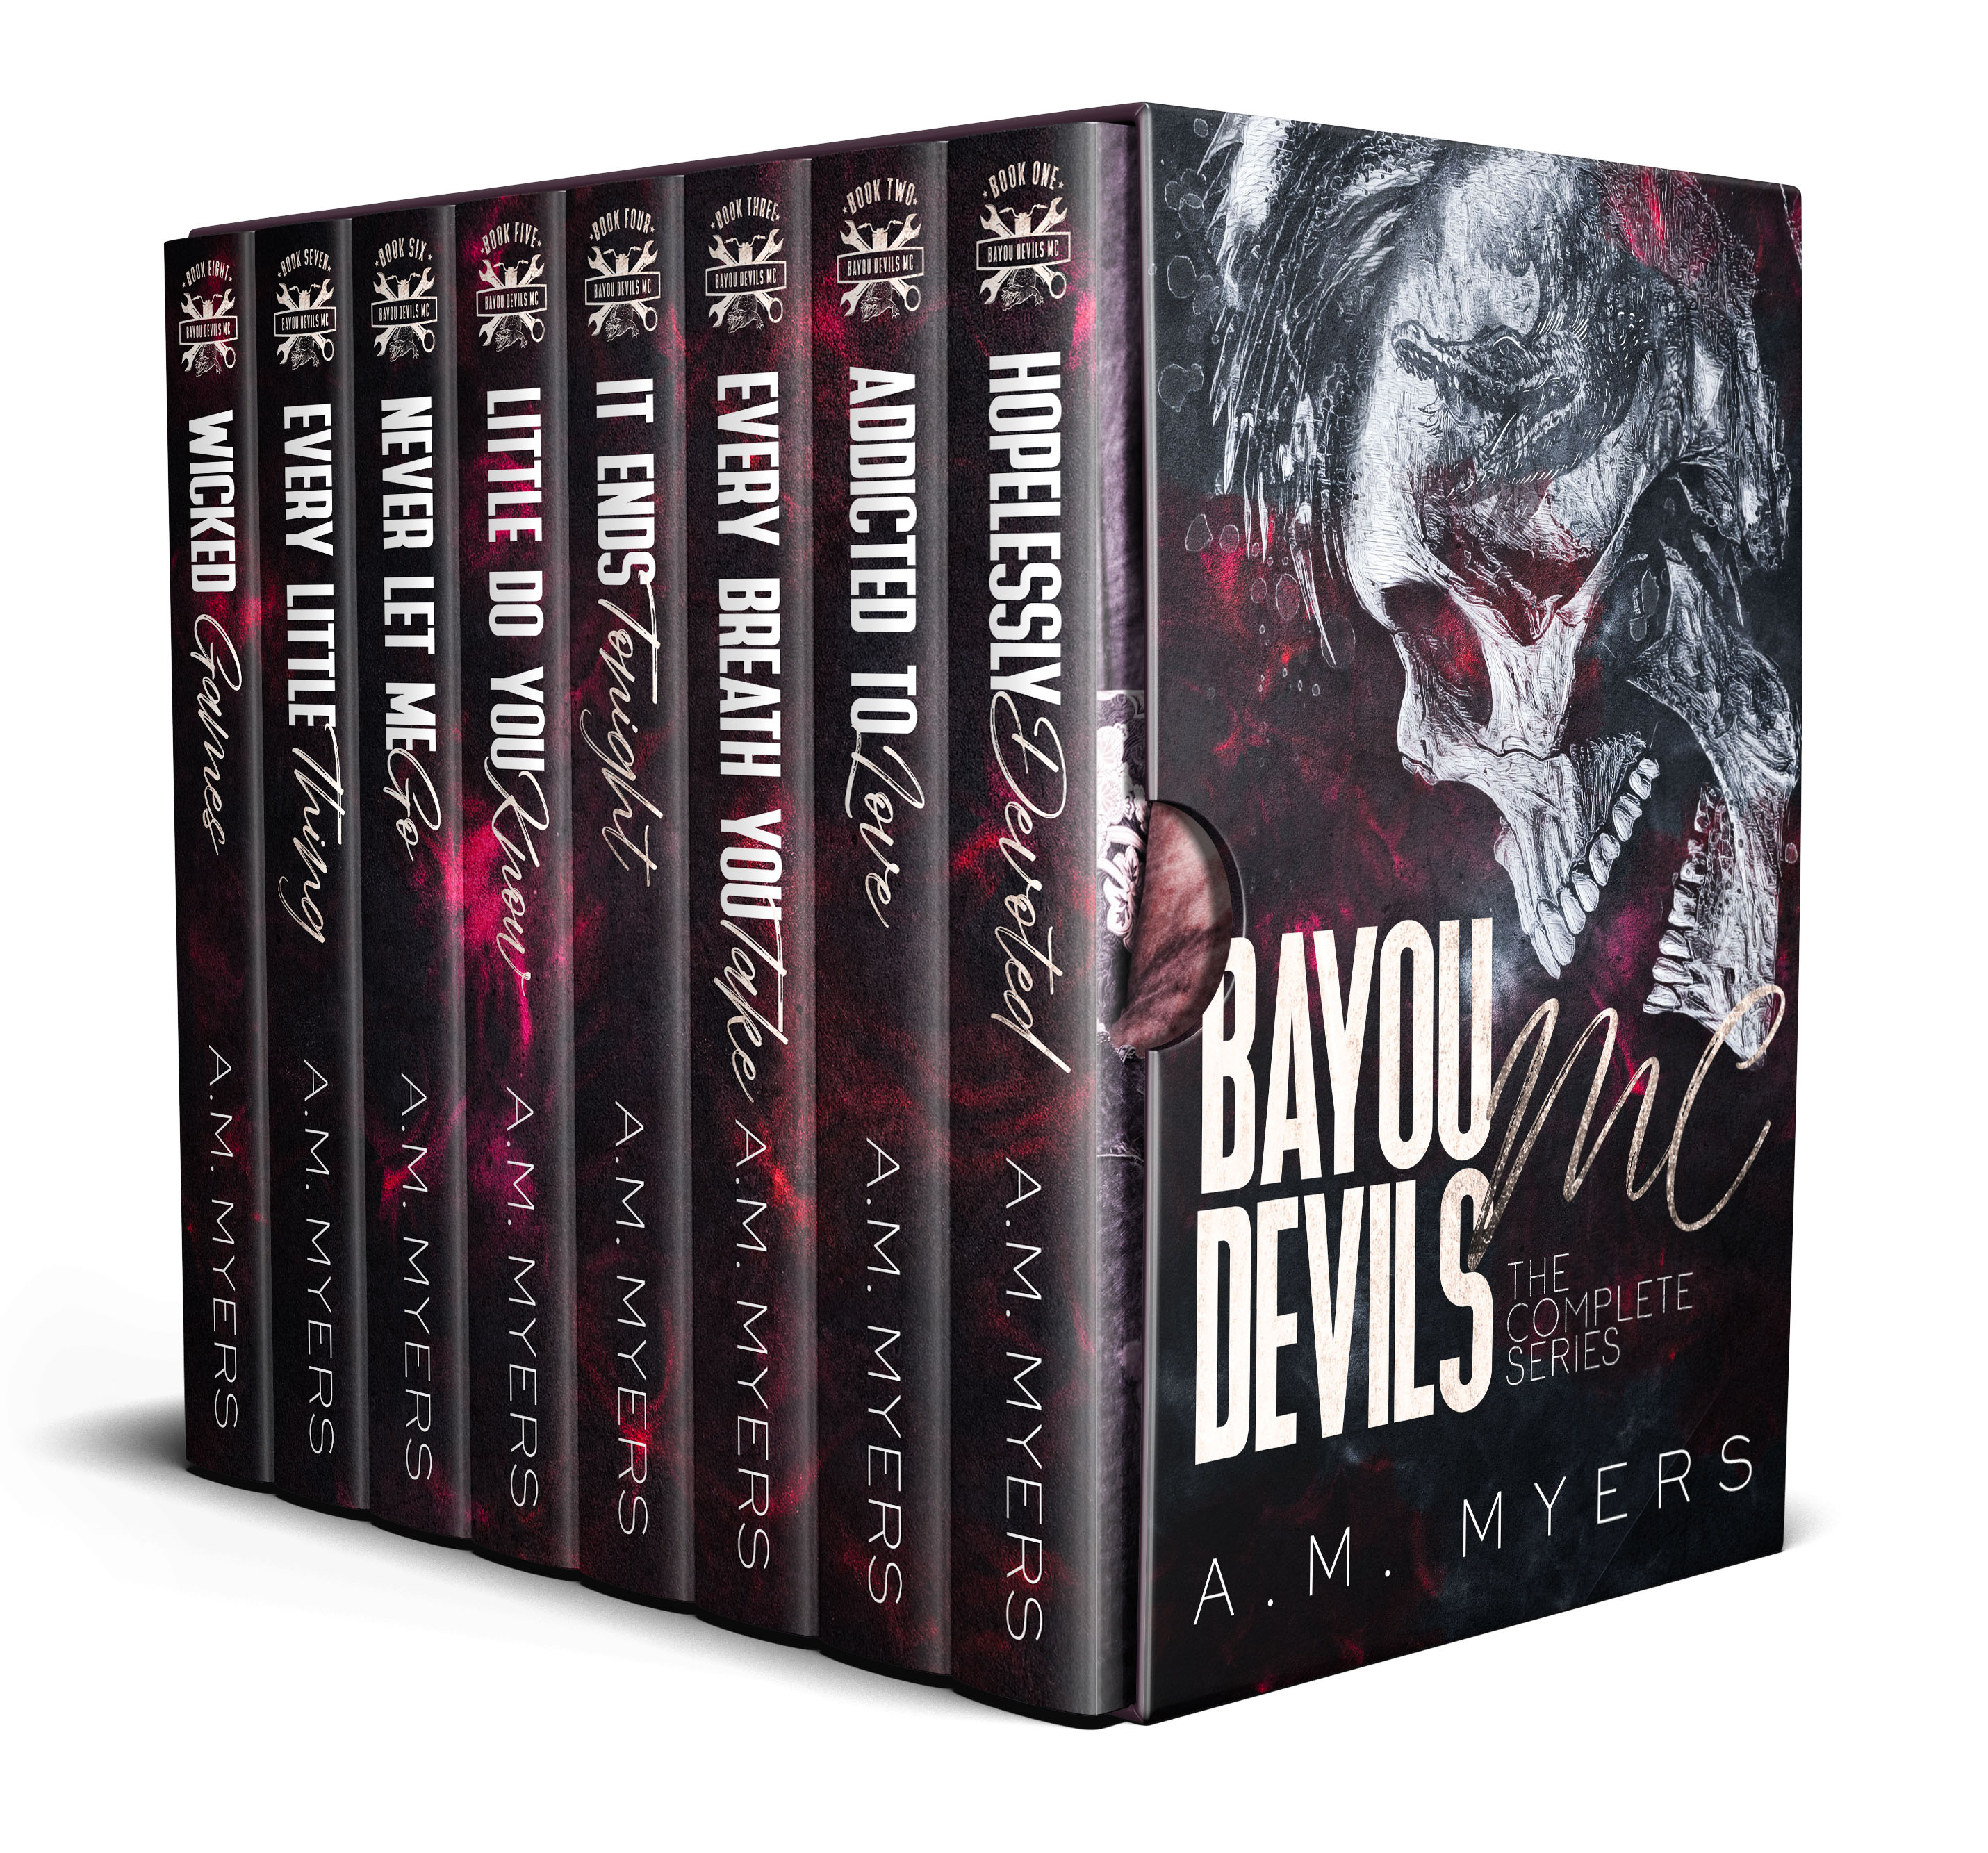 BDMC- Complete series 3D Cover